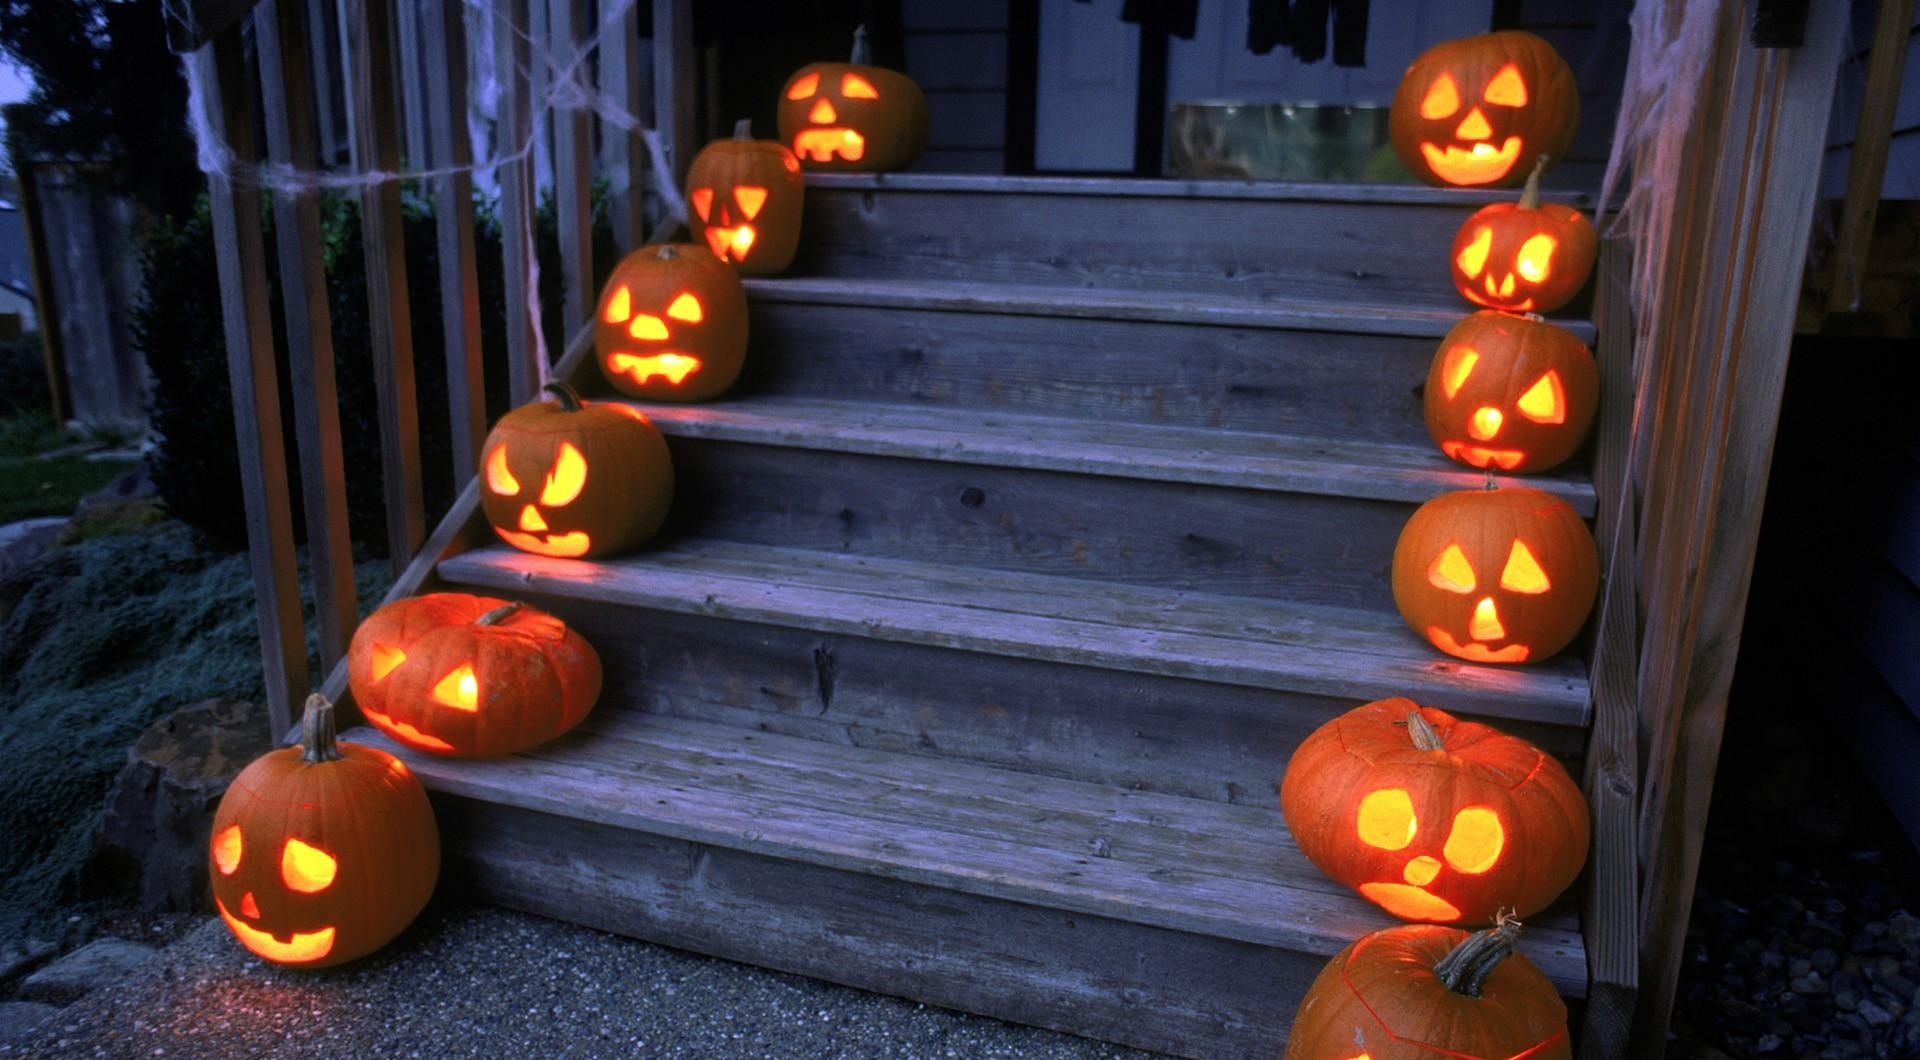 62262 download wallpaper Halloween, Holidays, Pumpkin, Holiday, Stairs, Ladder, Porch screensavers and pictures for free